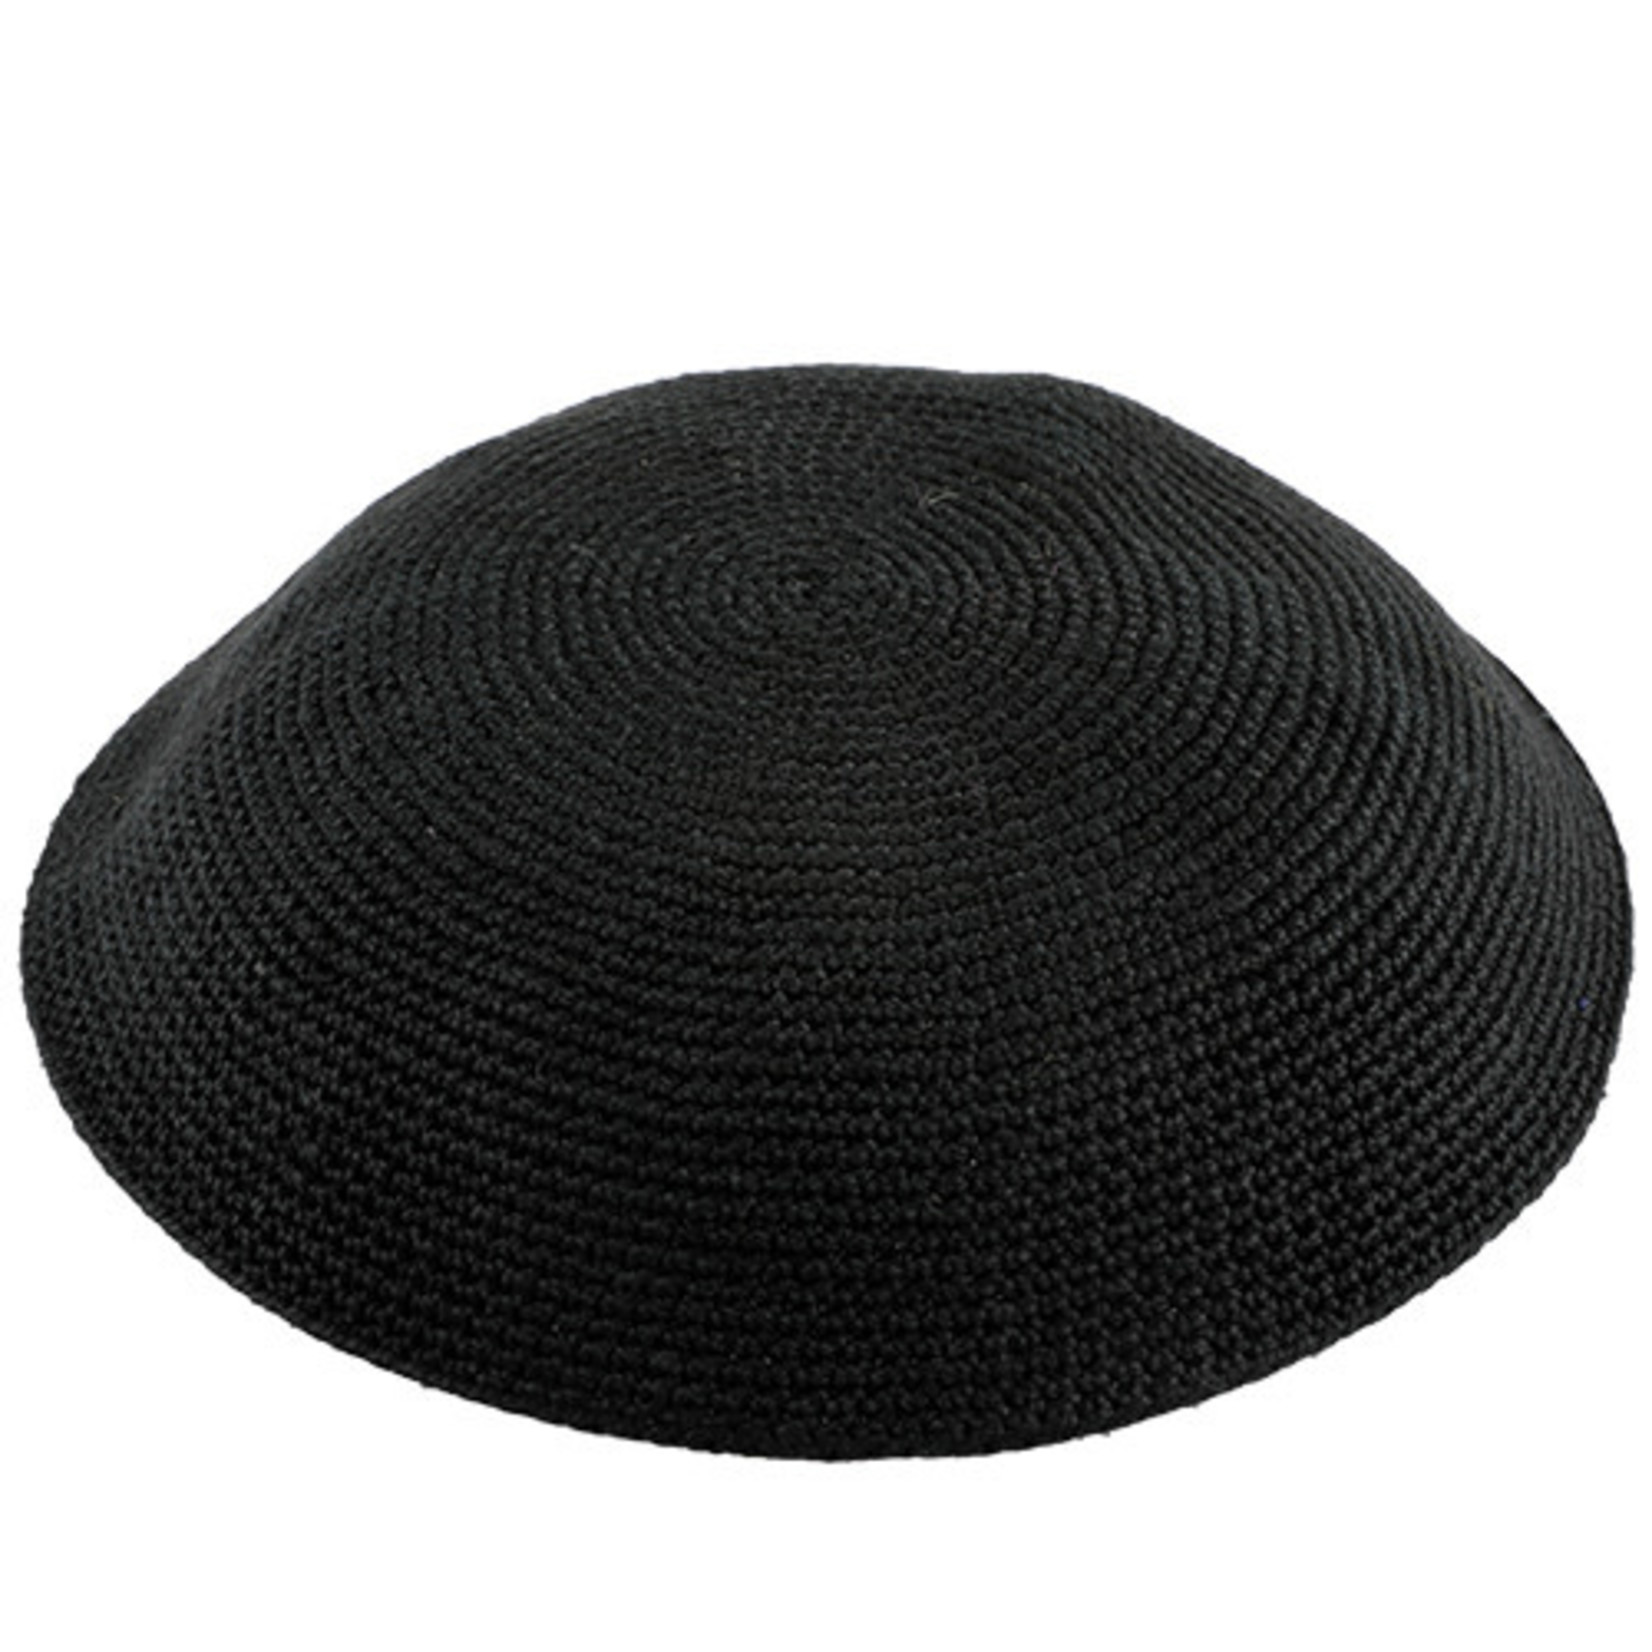 DMC Knit Kippah, Black, 15cm